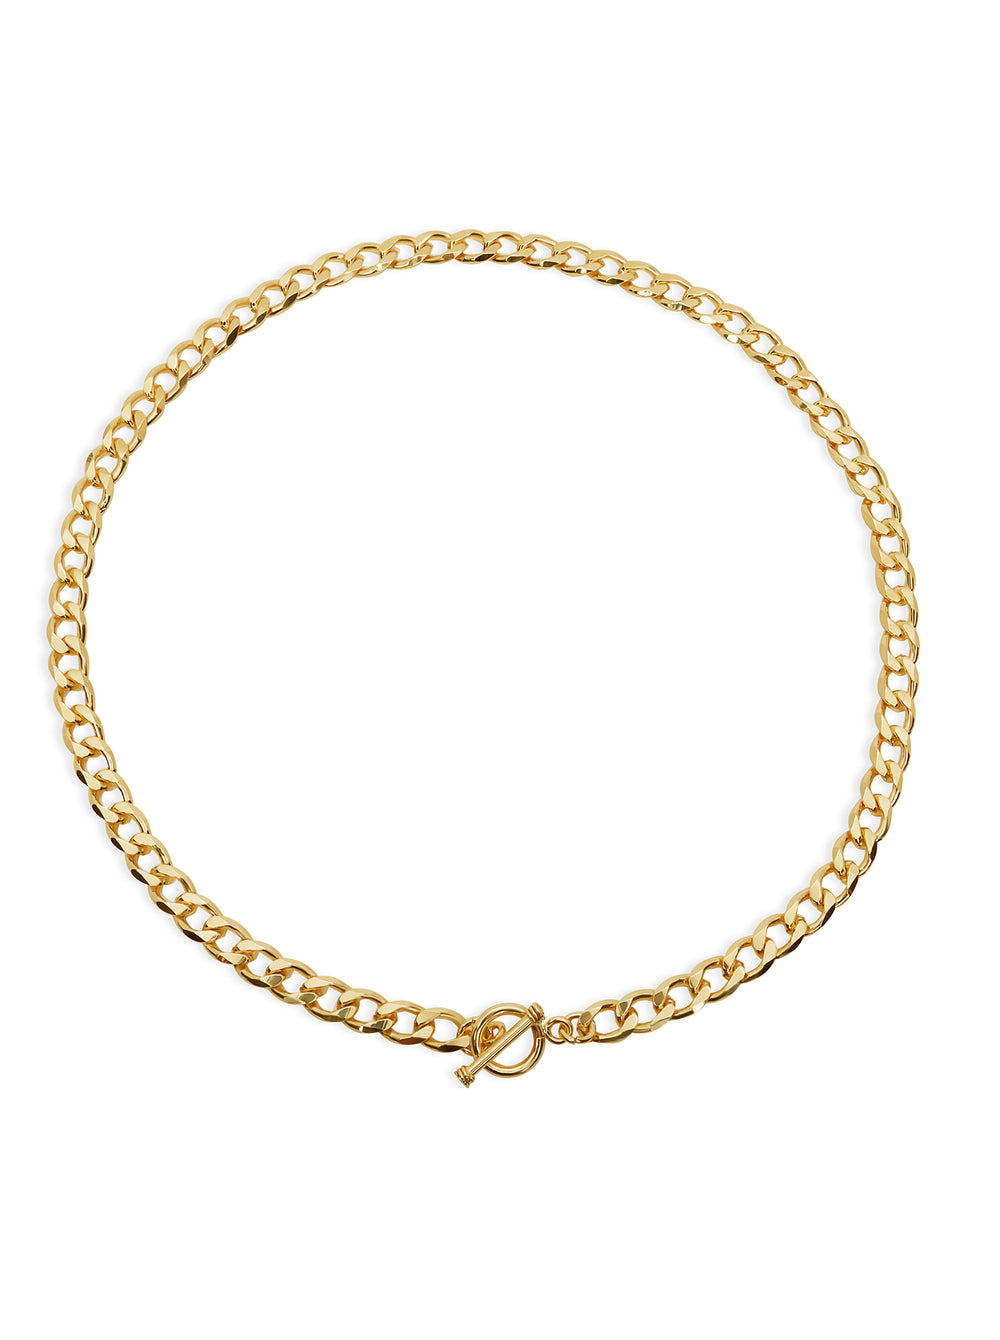 THE CURB LINK TOGGLE NECKLACE